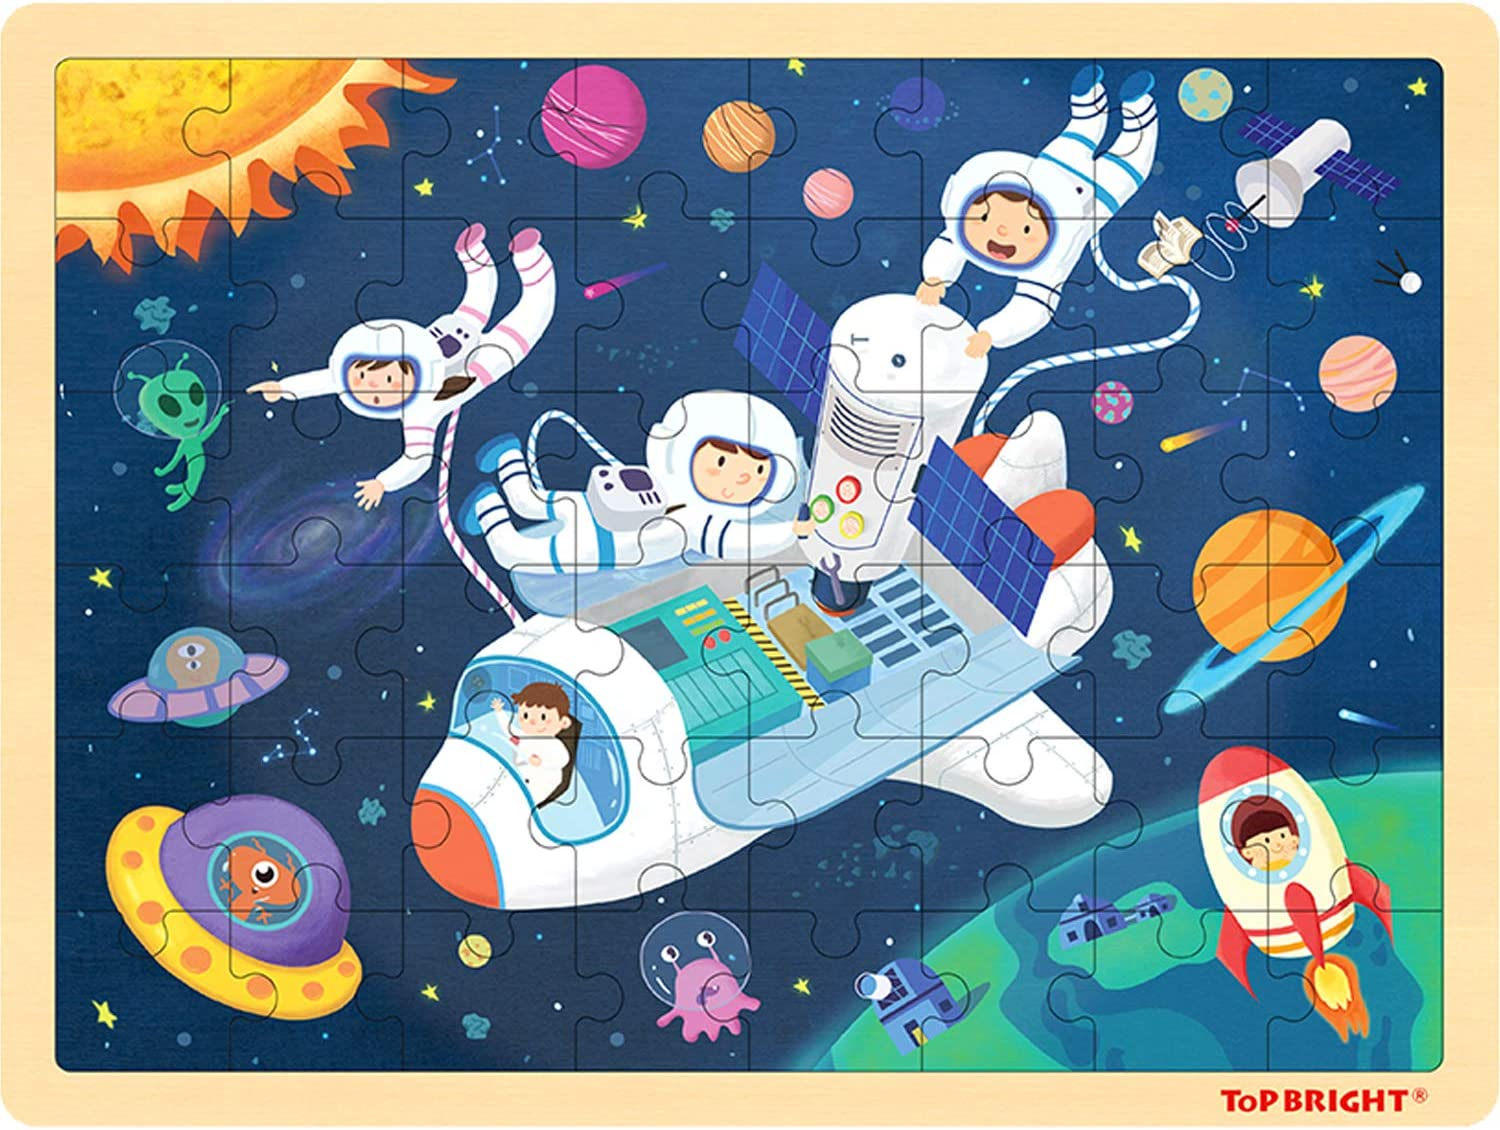 TOP BRIGHT 48 Piece Puzzles for Kids Ages 4-8 - Rocket Wooden Jigsaw Puzzles for Toddlers 4 Year Old